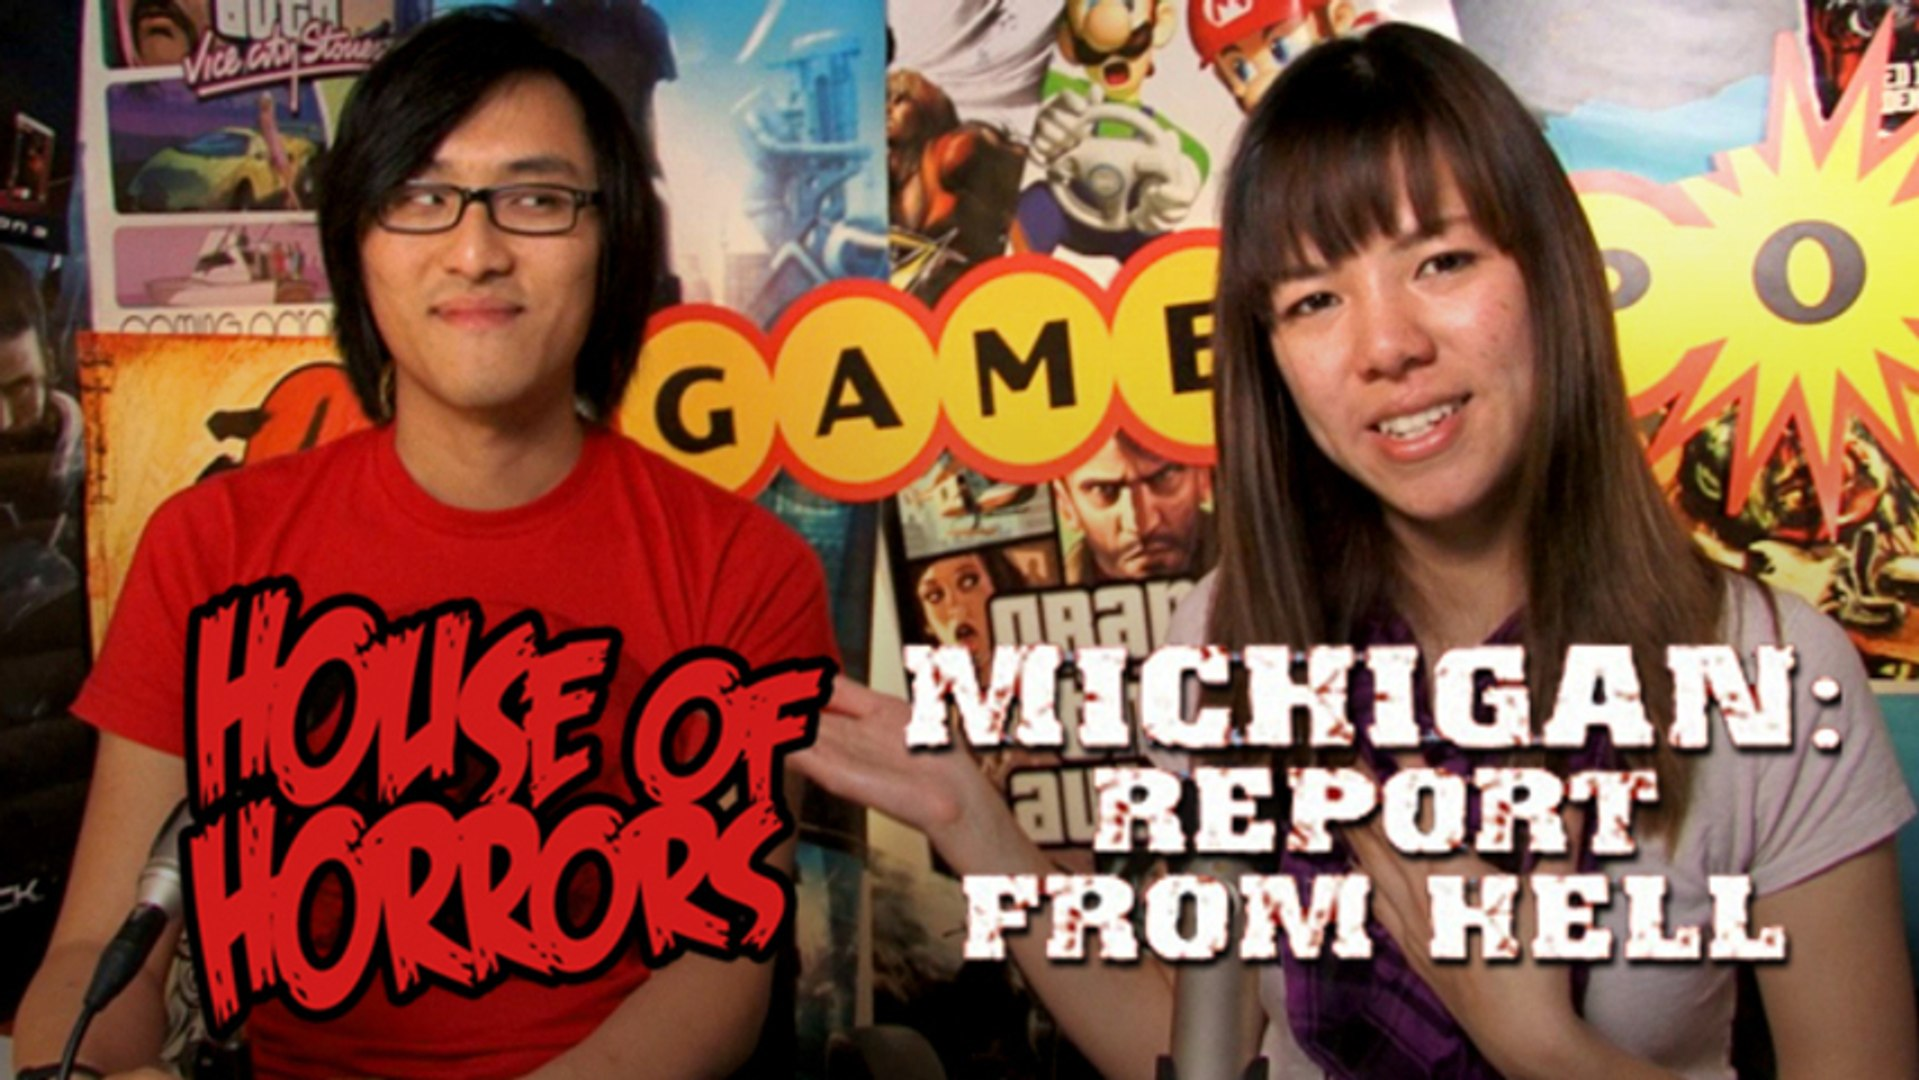 House of Horrors - Michigan: Report From Hell